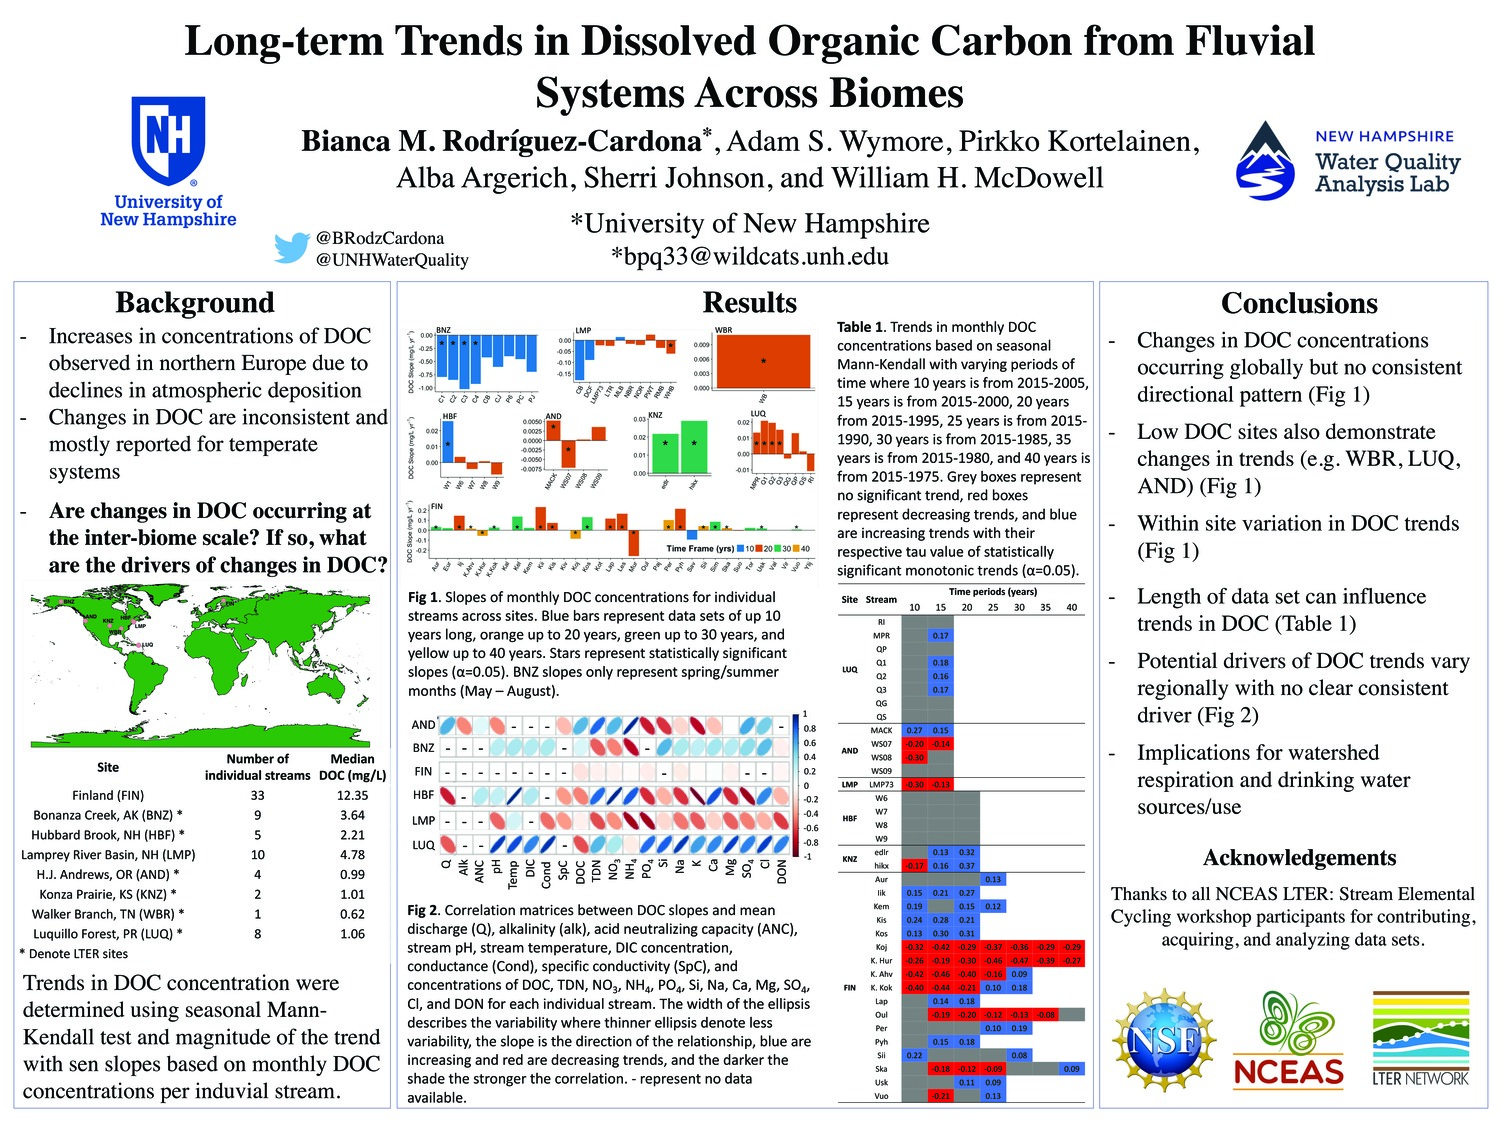 Long-Term Trends In Dissolved Organic Carbon From Fluvial Systems Across Biomes by bpq33